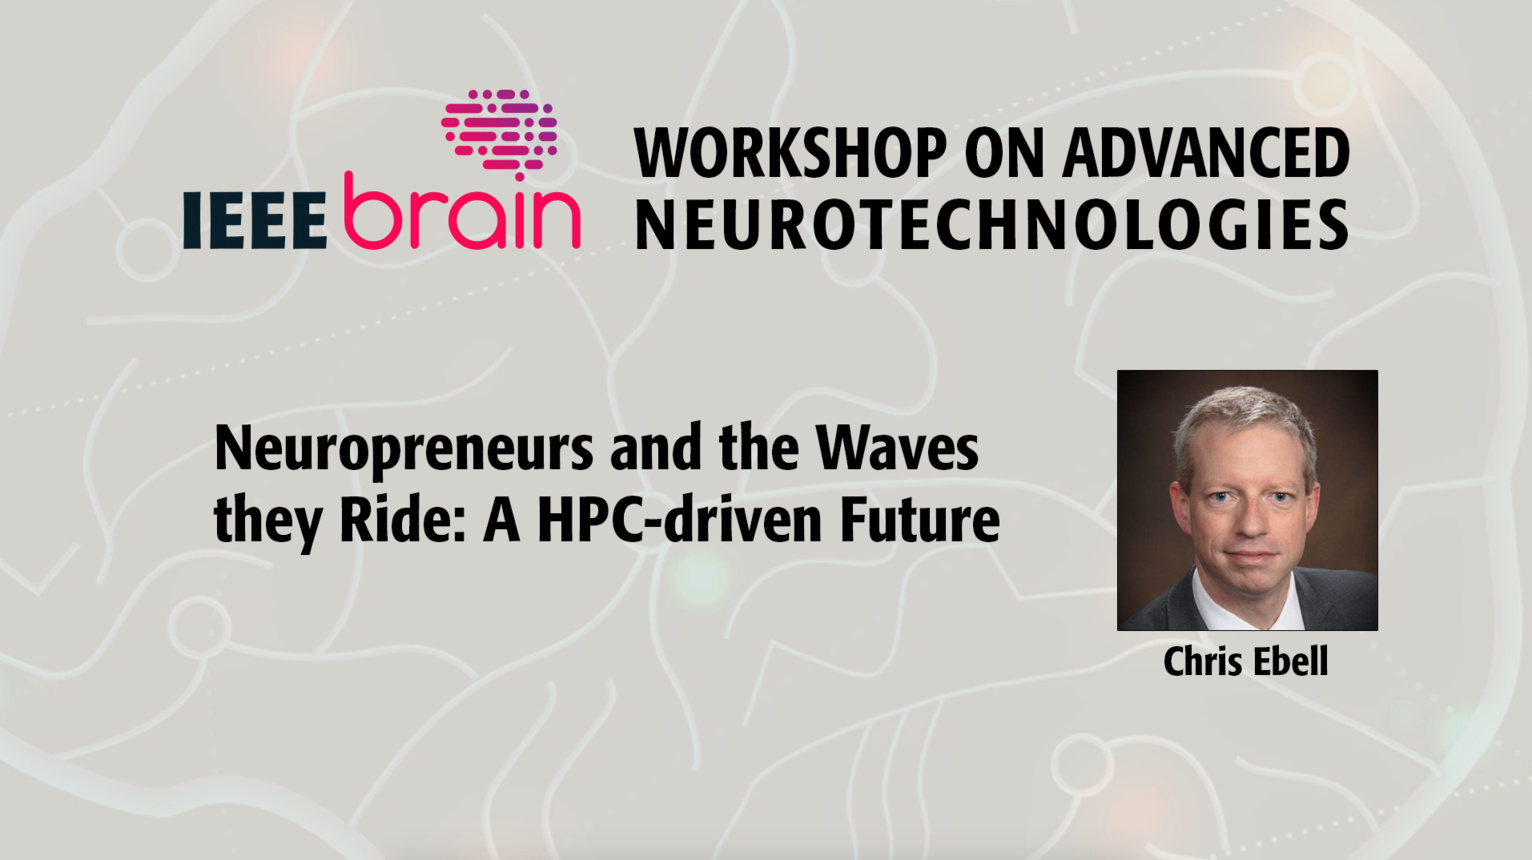 Neuropreneurs and the Waves they Ride: A HPC-driven Future - IEEE Brain Workshop